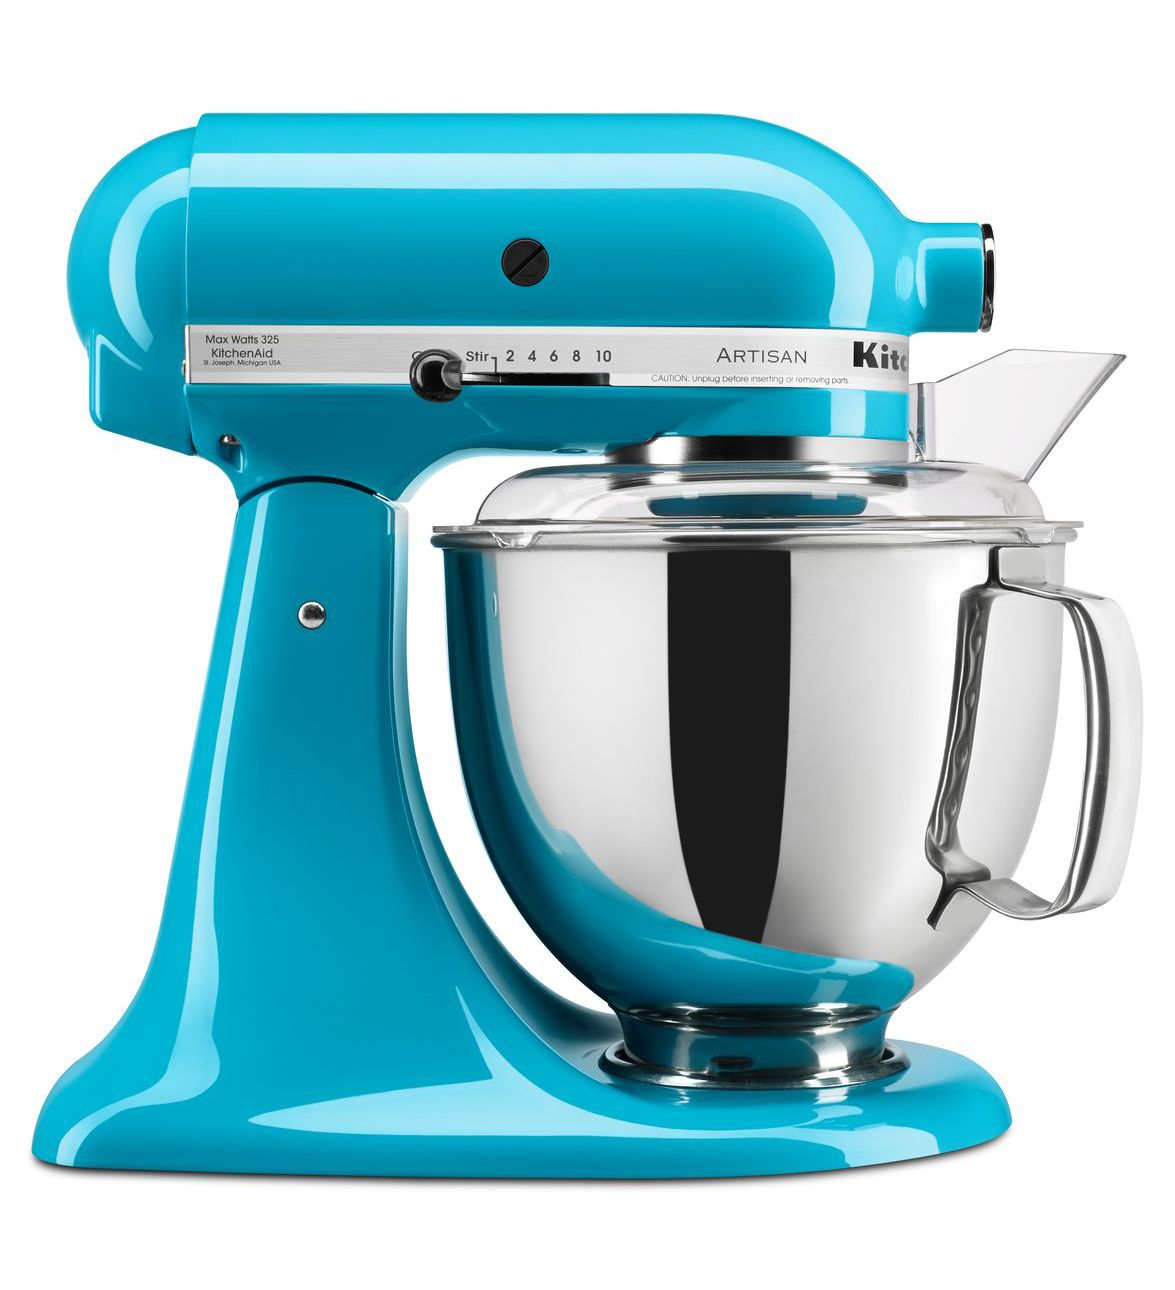 KitchenAid Crystal Blue 5-Quart Artisan Series Stand Mixer